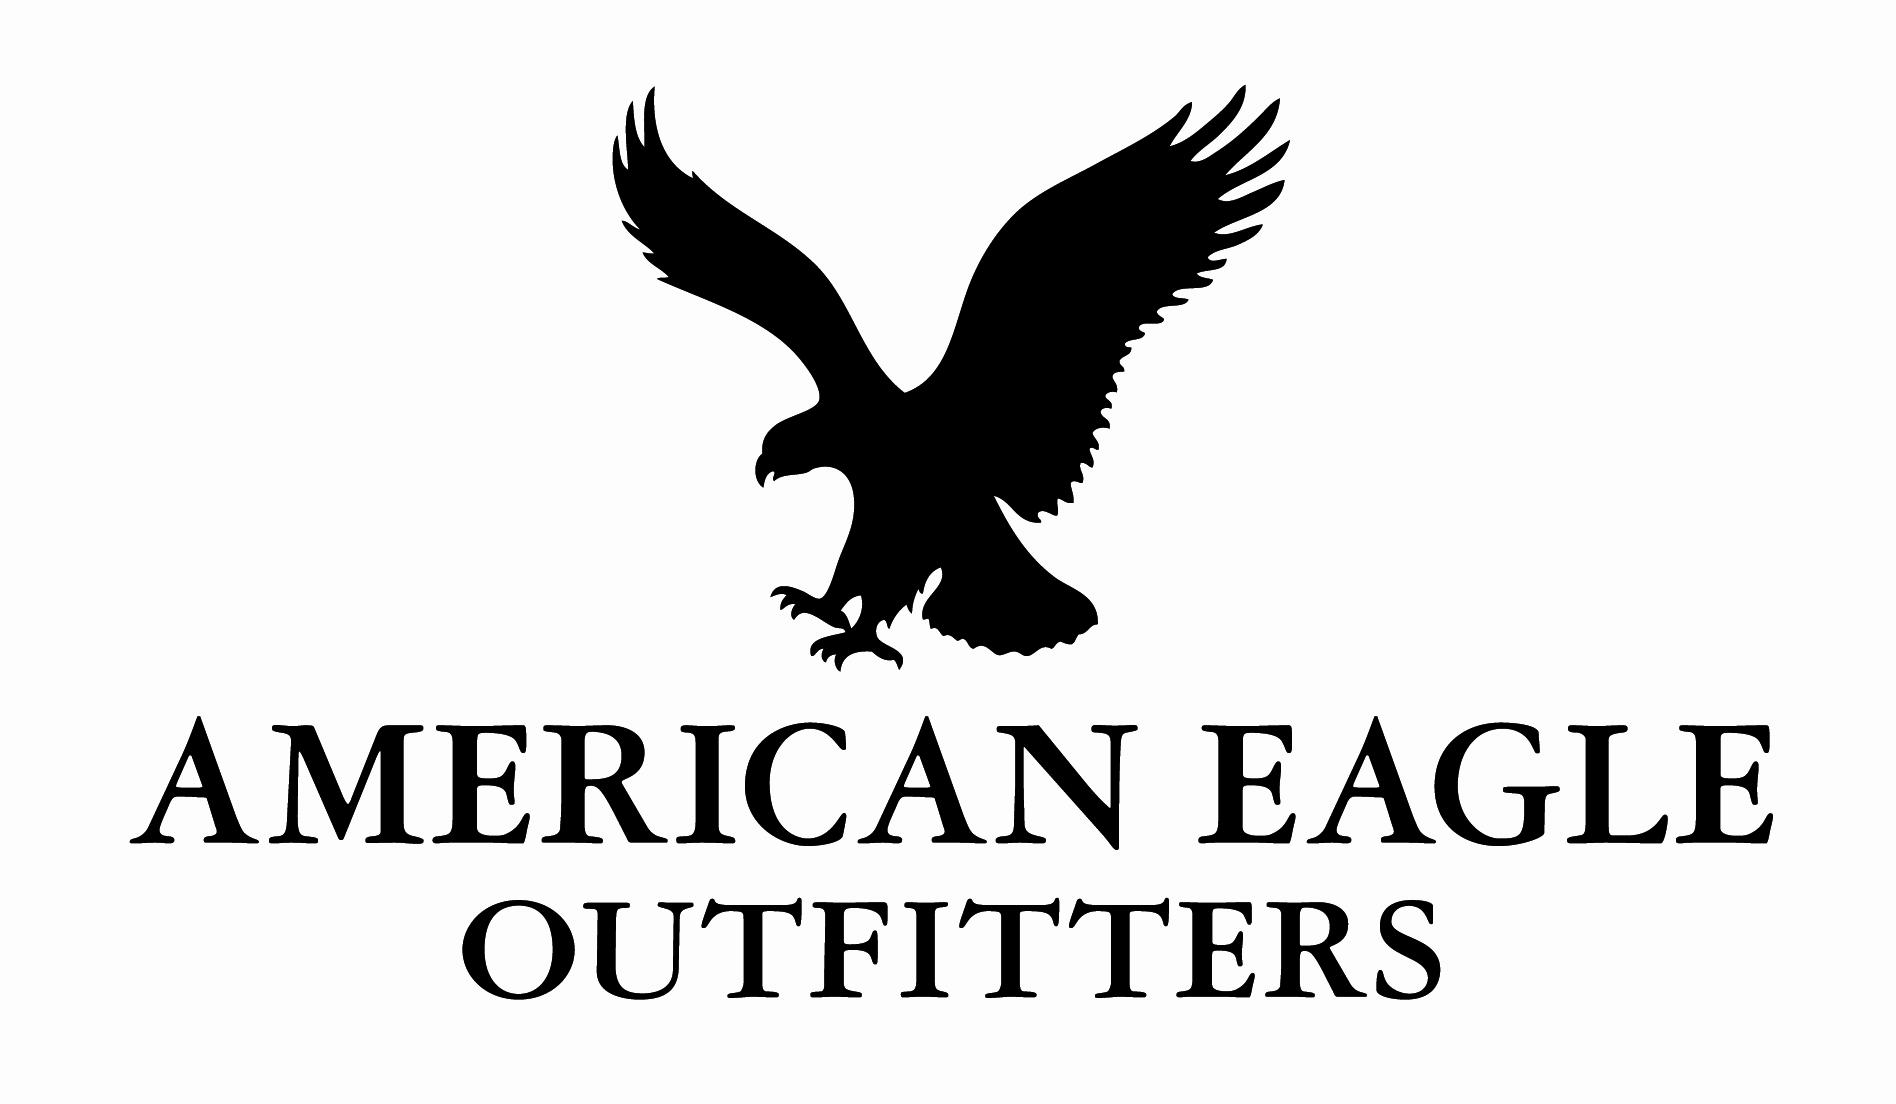 American Eagle Outfitters Wallpaper CONEXAO 560 1896x1104